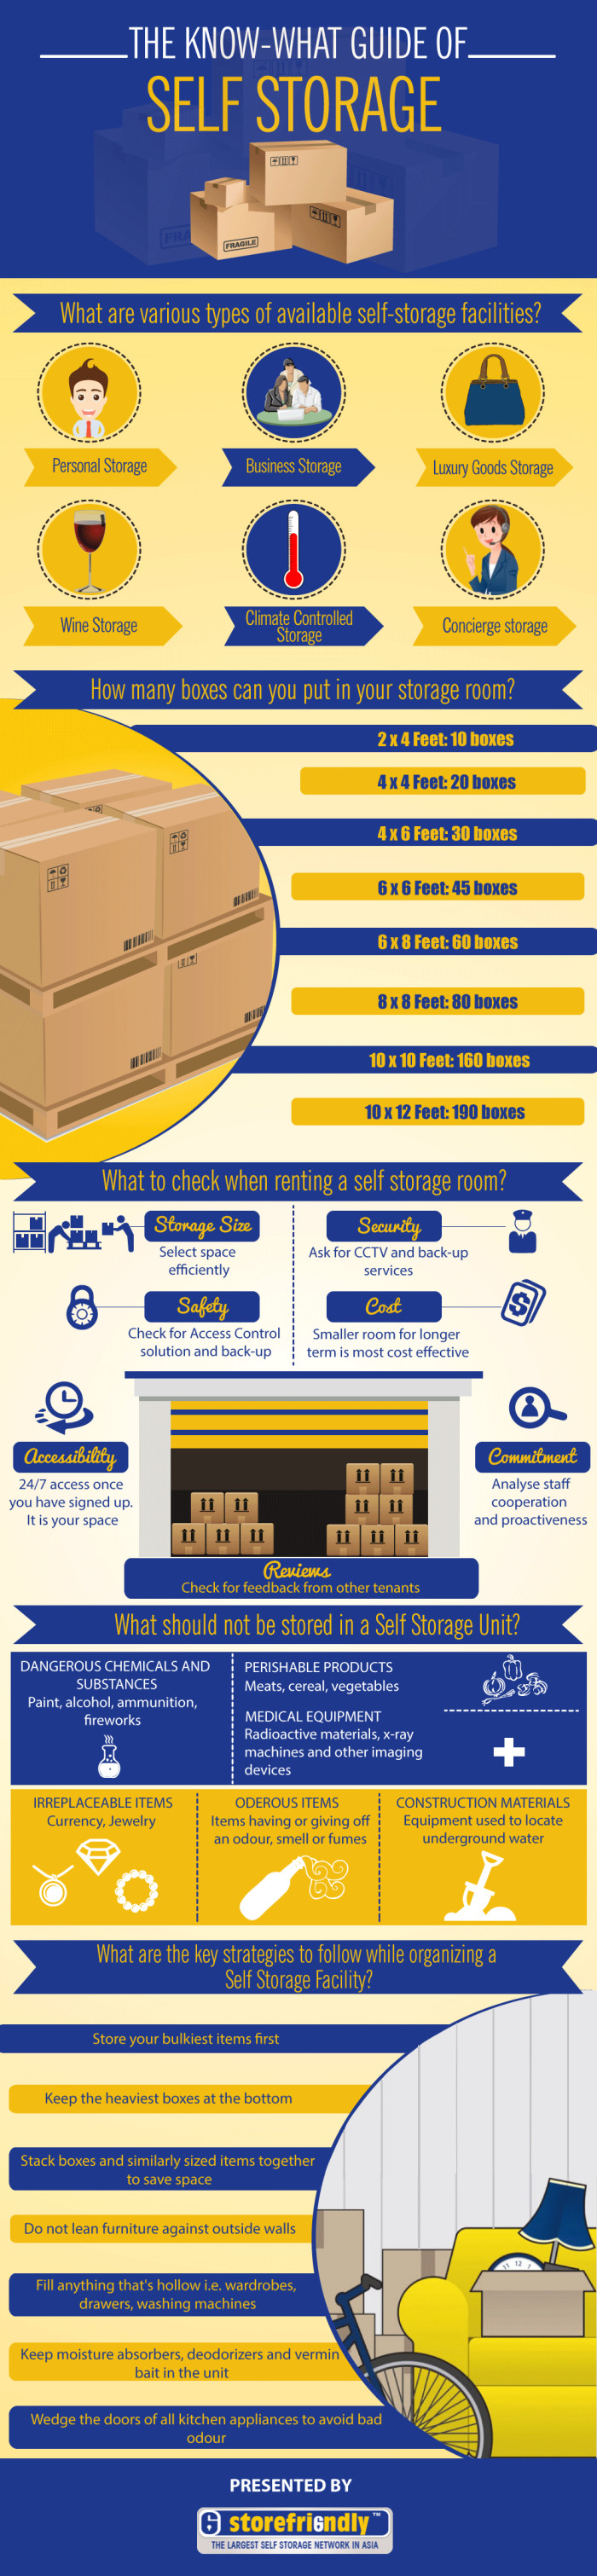 The Know-What Guide of Self Storage